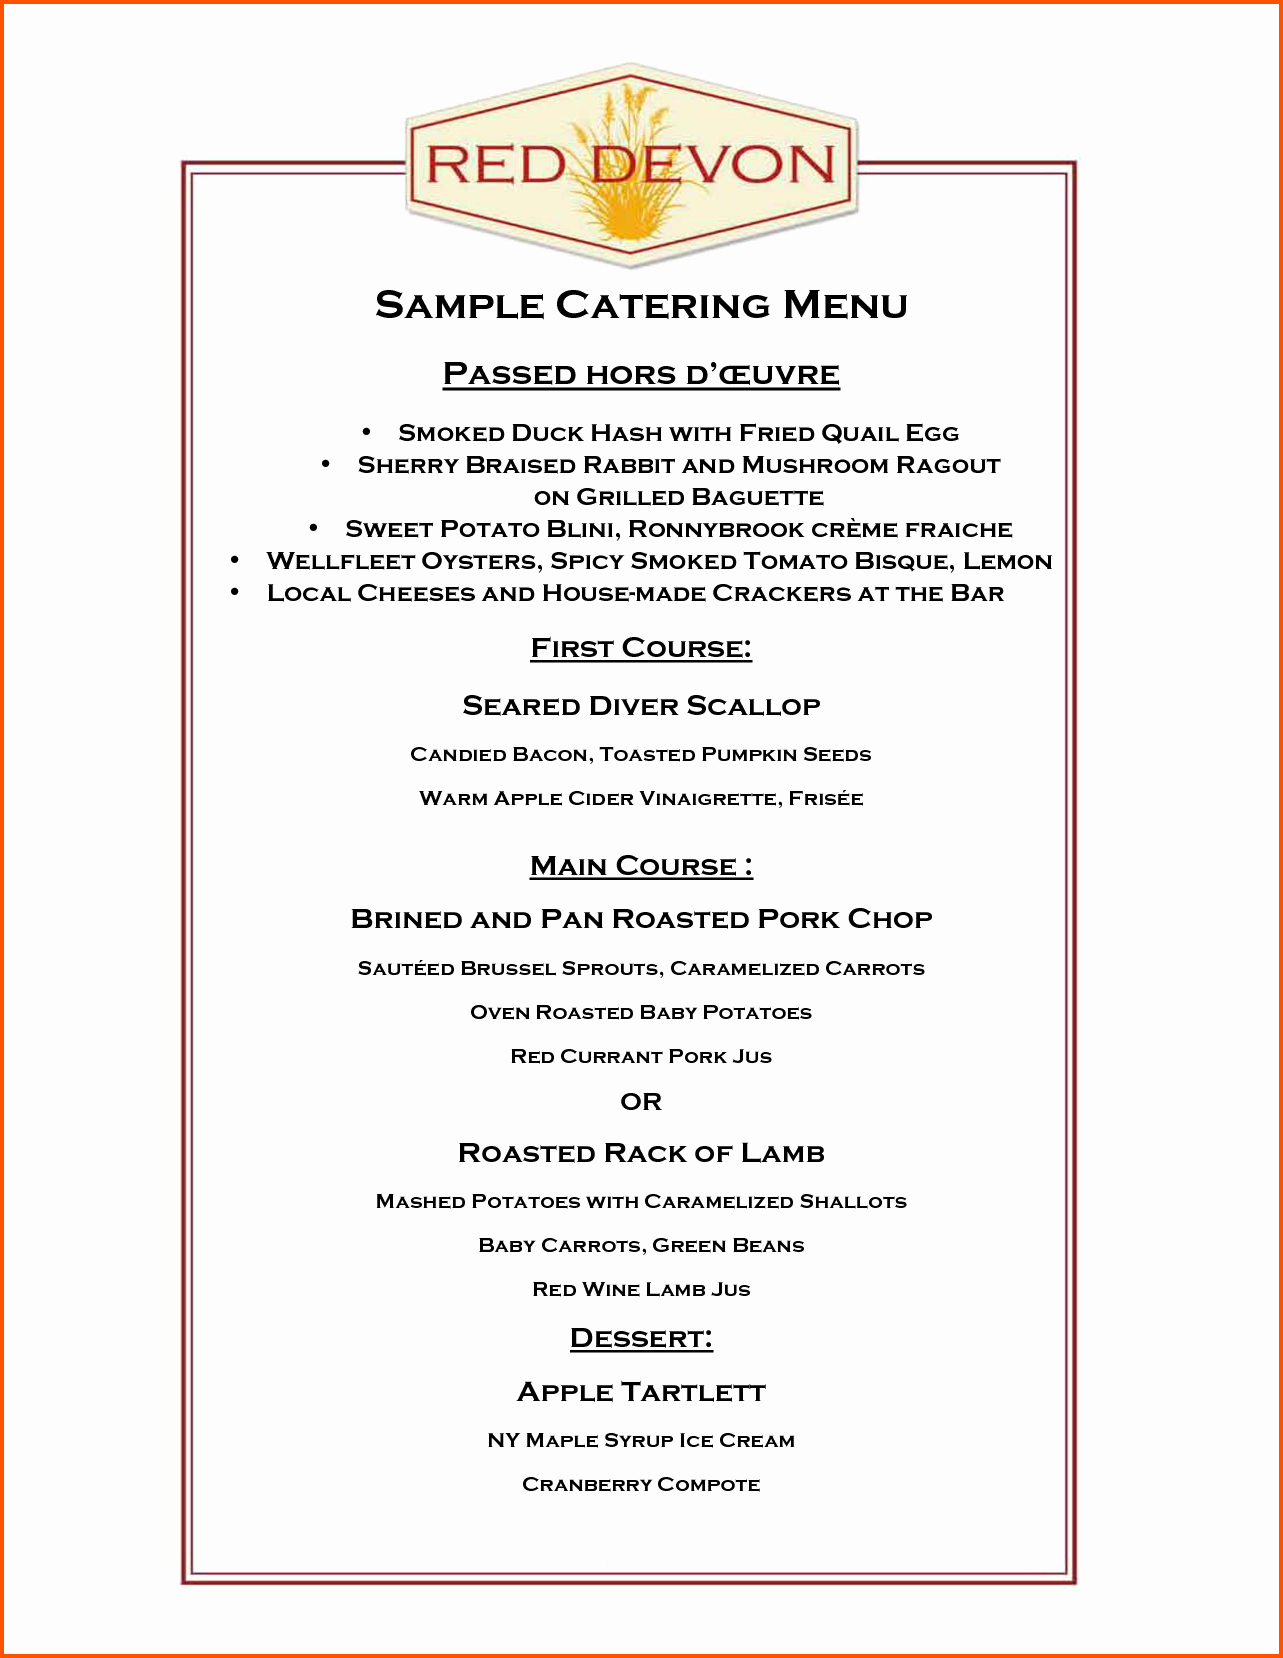 Catering Menu Template Free Best Of Catering Menu Template Free Portablegasgrillweber